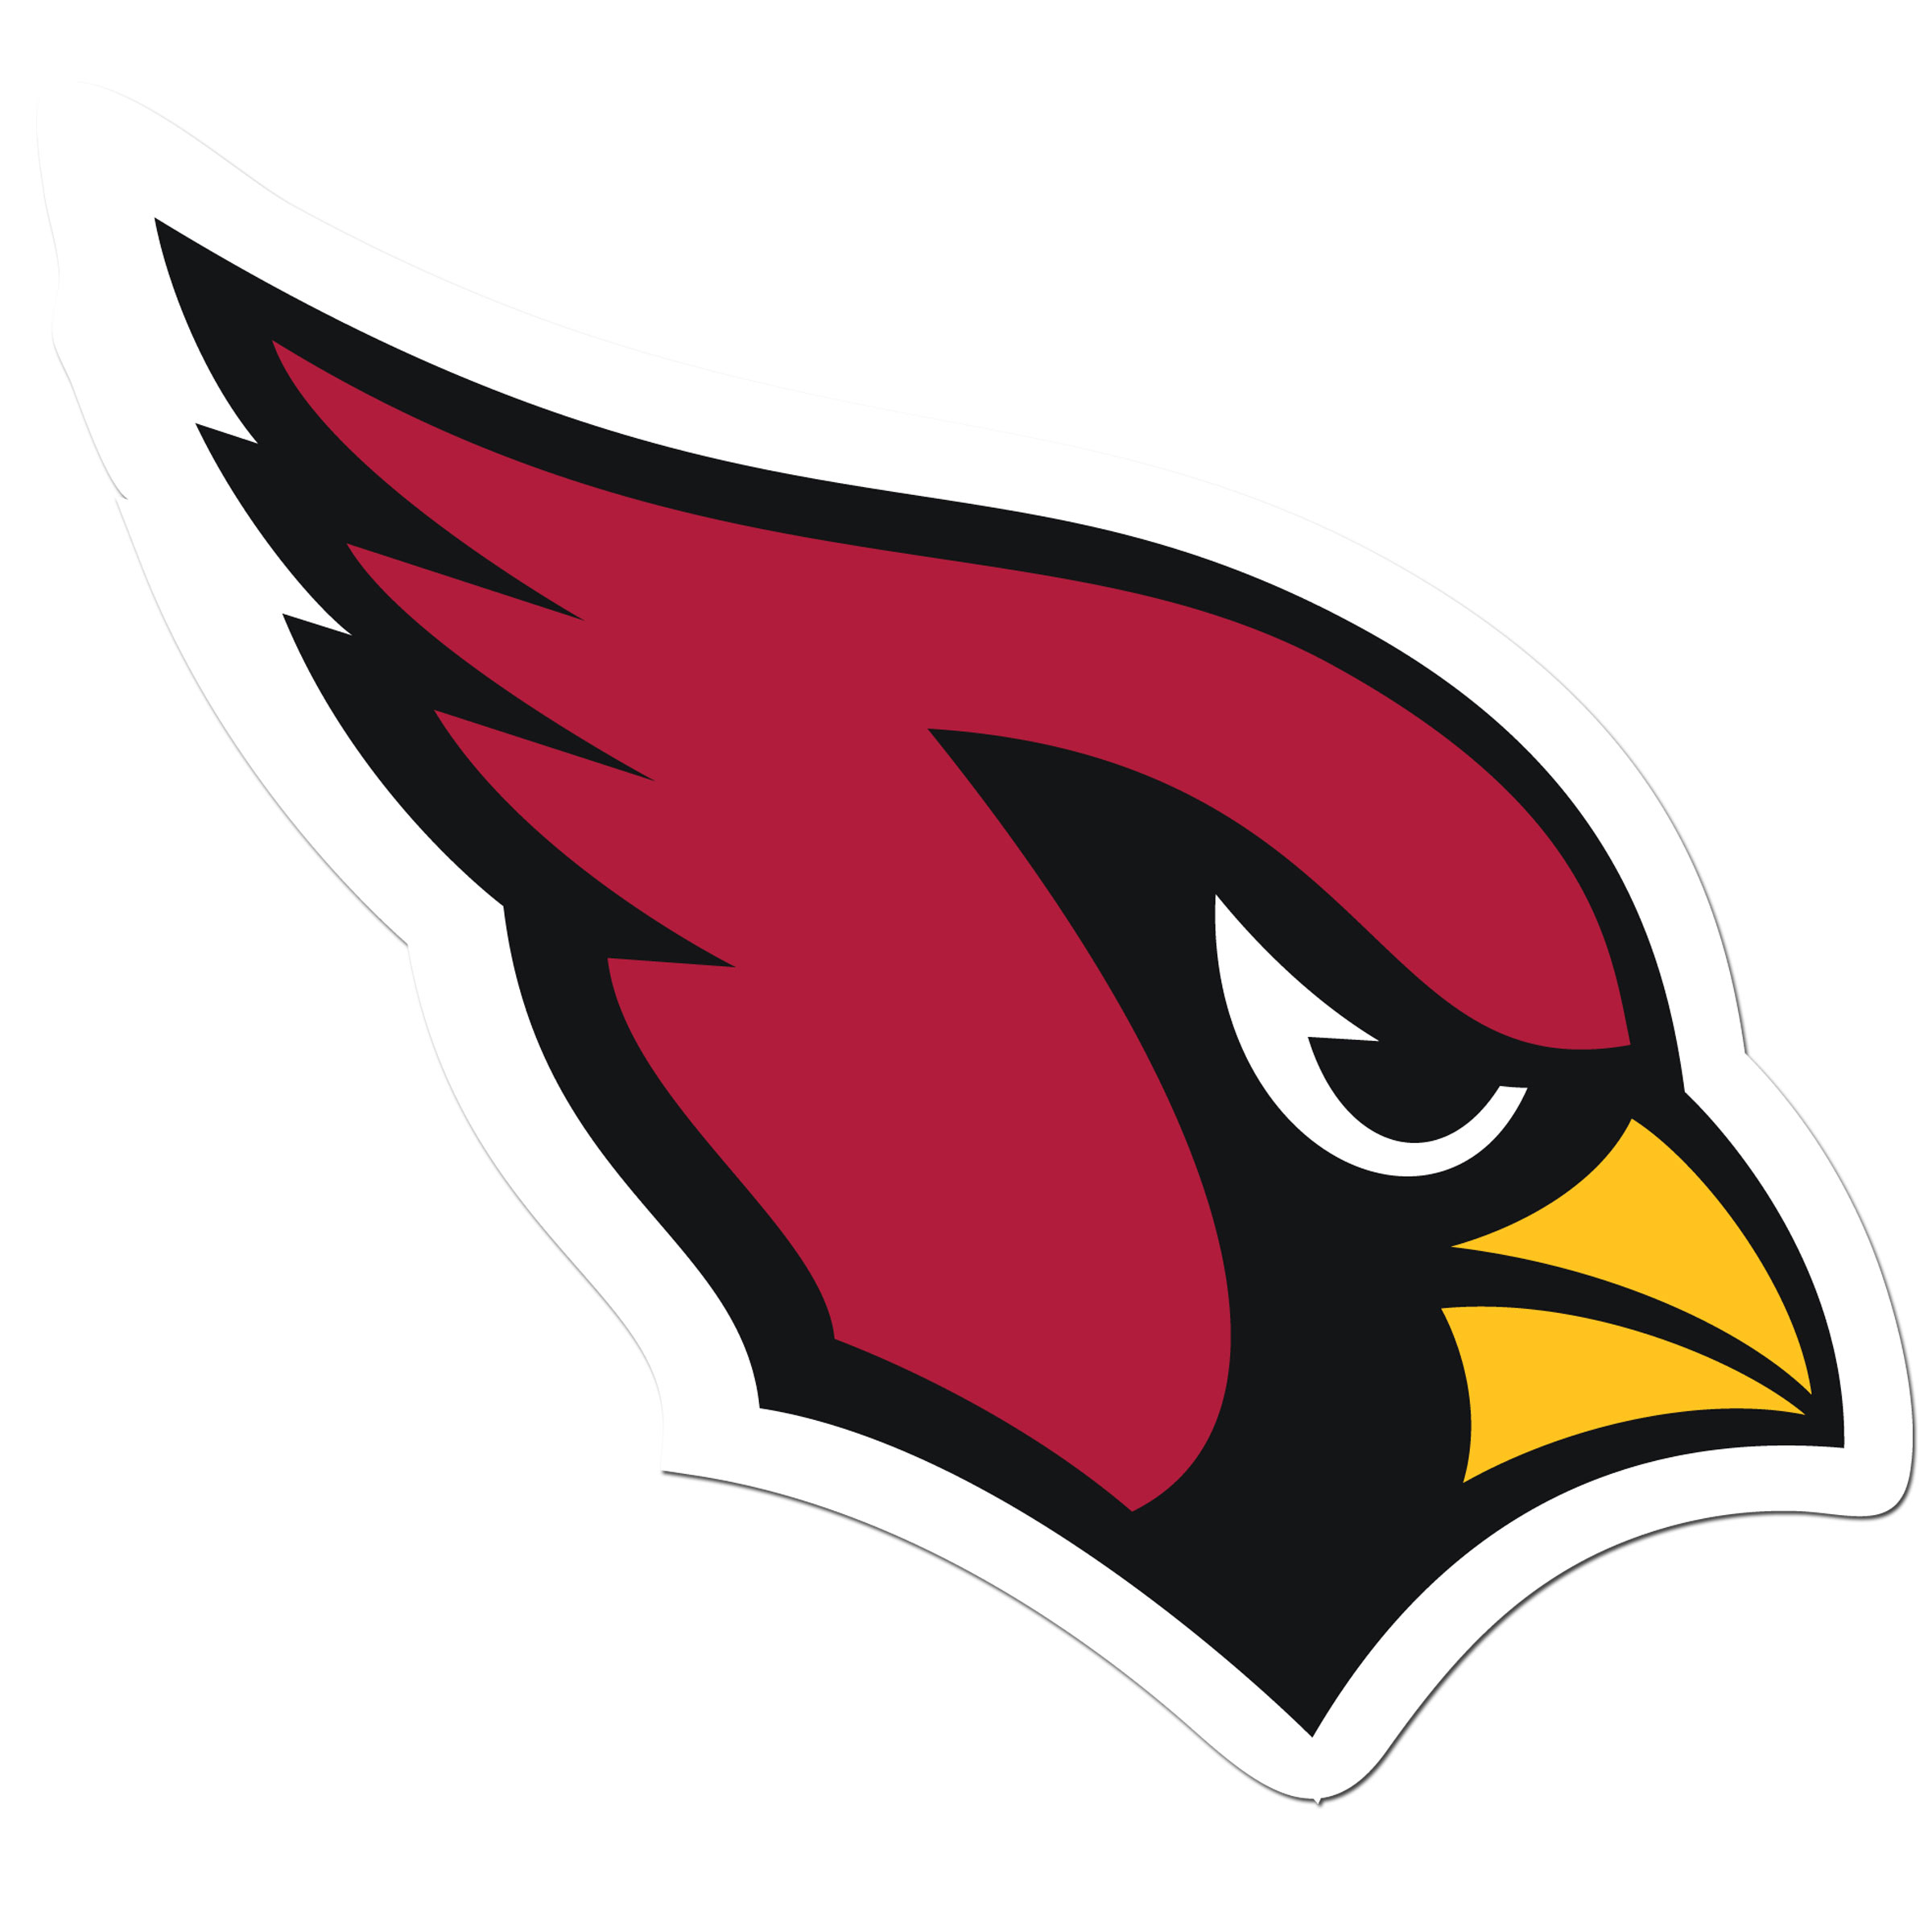 Arizona Cardinals 8 inch Auto Decal - This bold, 8 inch Arizona Cardinals is a great way to show off your team pride! The low tack vinyl decal is easily positioned and adjusted to make sure you get that logo in just the right spot on your vehicle. Designed to be used on the outside of the window.